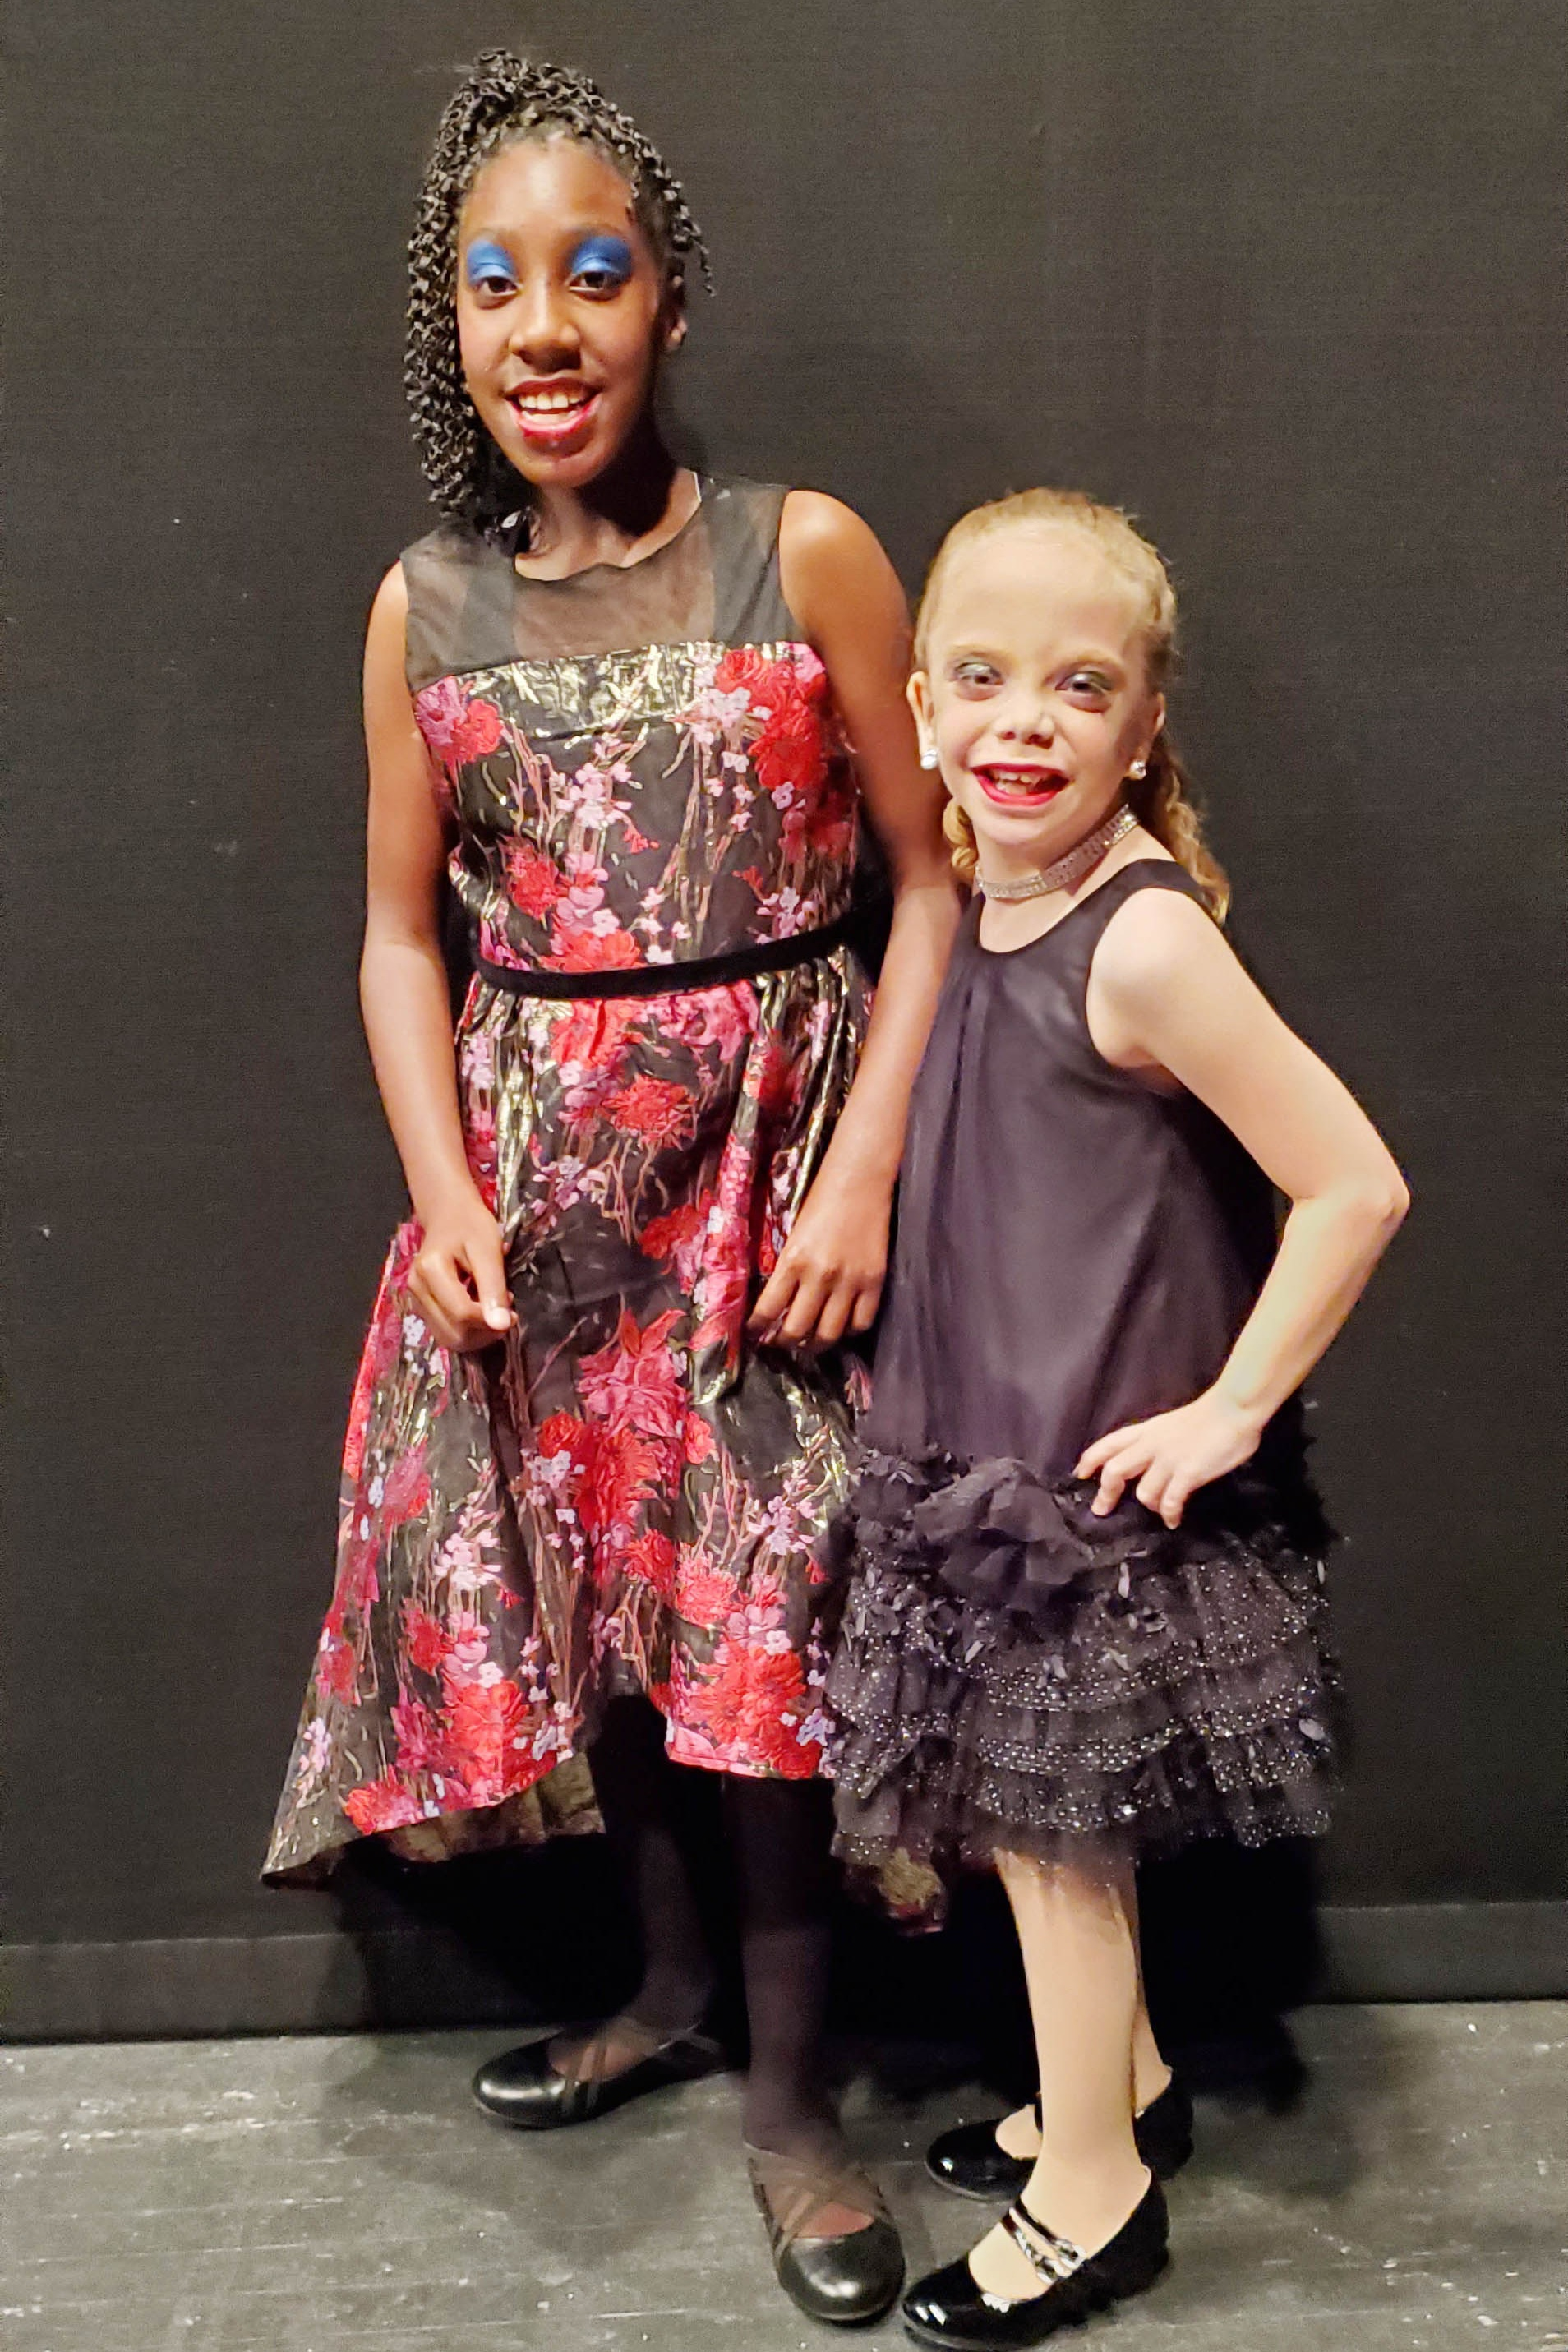 Both Olivia and Katherine enjoy dancing and performing during All Rhythm Dance Alley's dance recital.